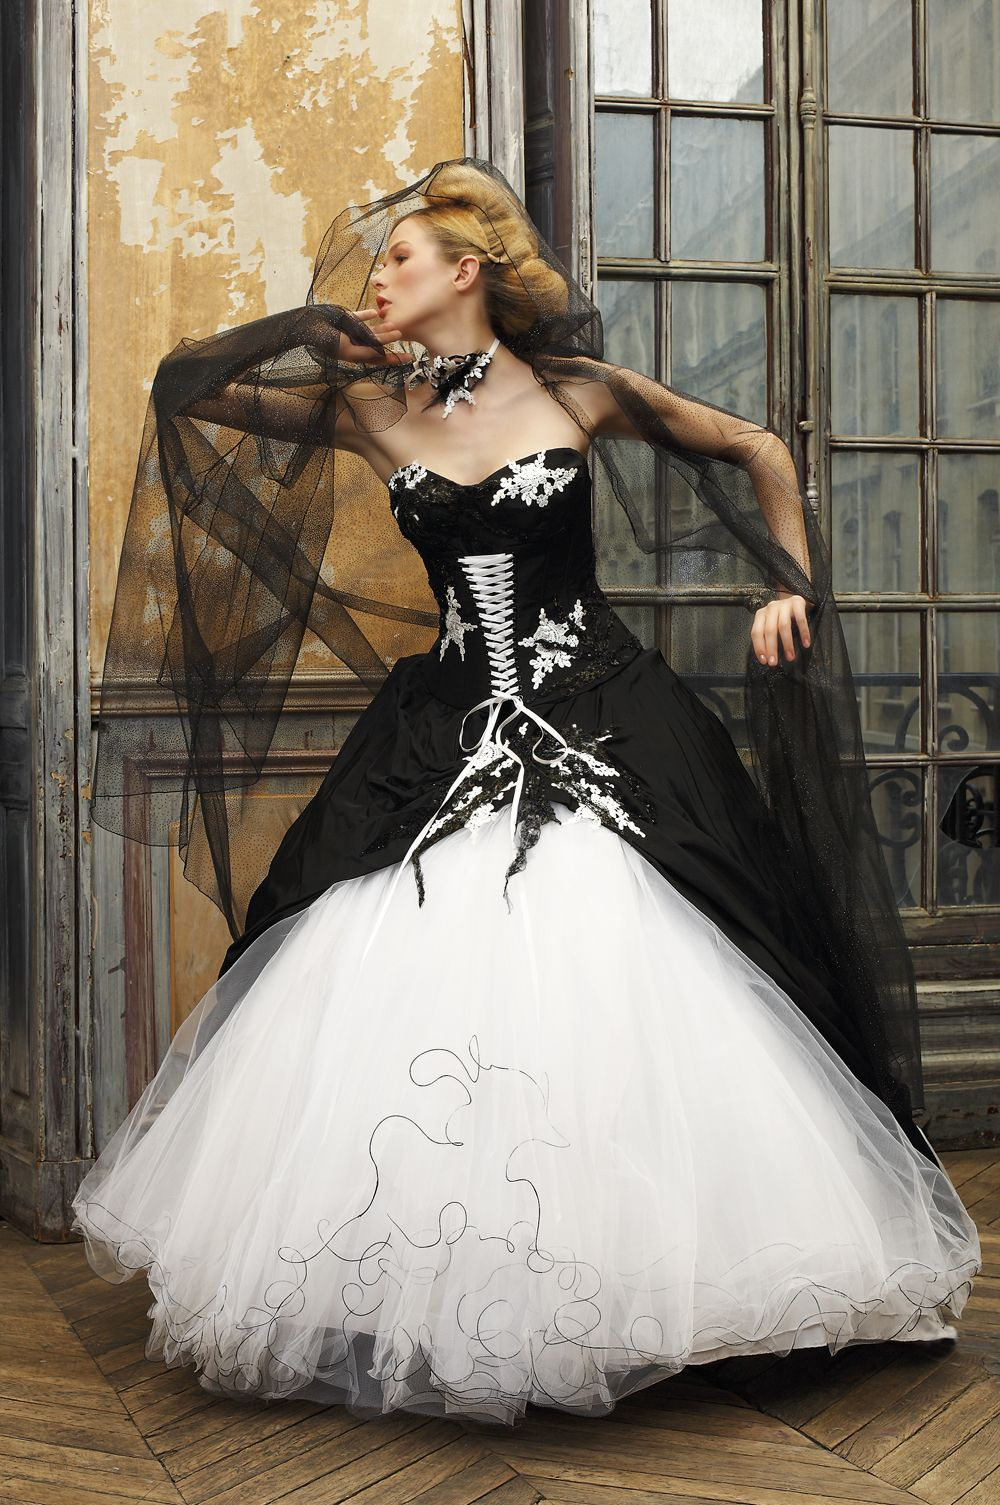 wedding dresses black wedding dresses black eli shay wedding dress collections u jewelry white black u corset and taffeta skirt trimmed